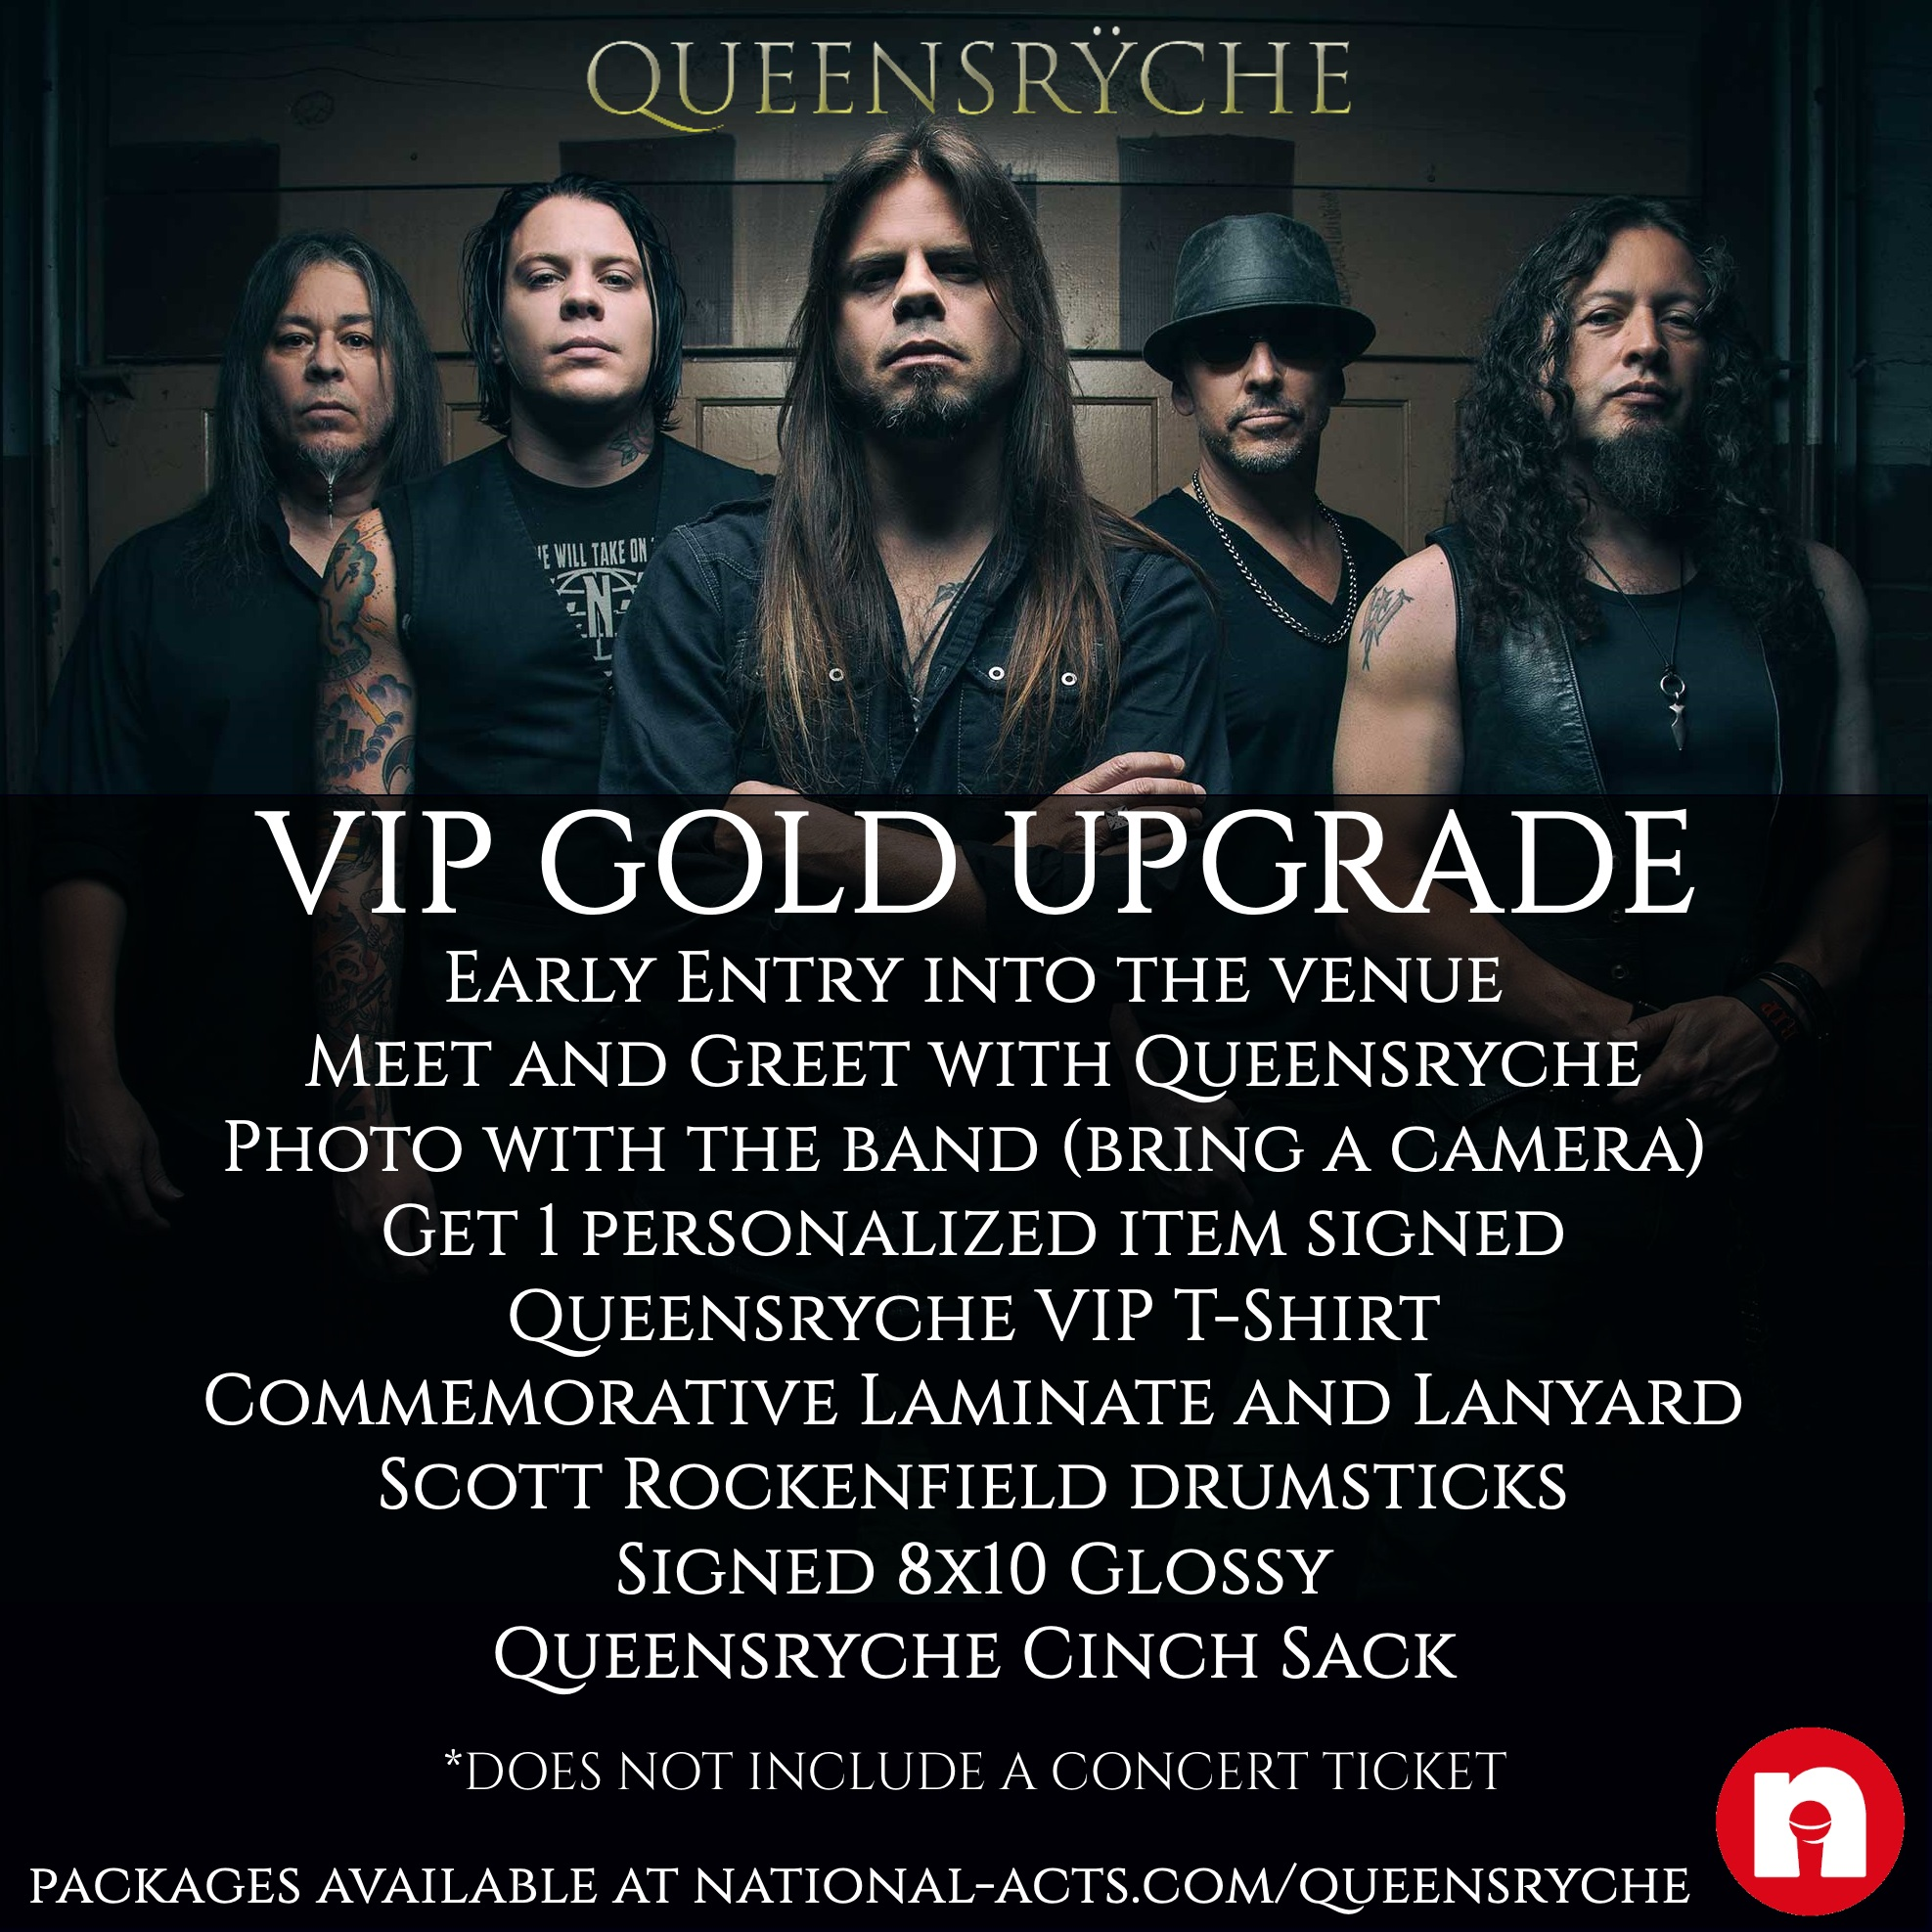 Tickets for queensryche vip st charles il in st charles from queensryche vip st charles il kristyandbryce Images